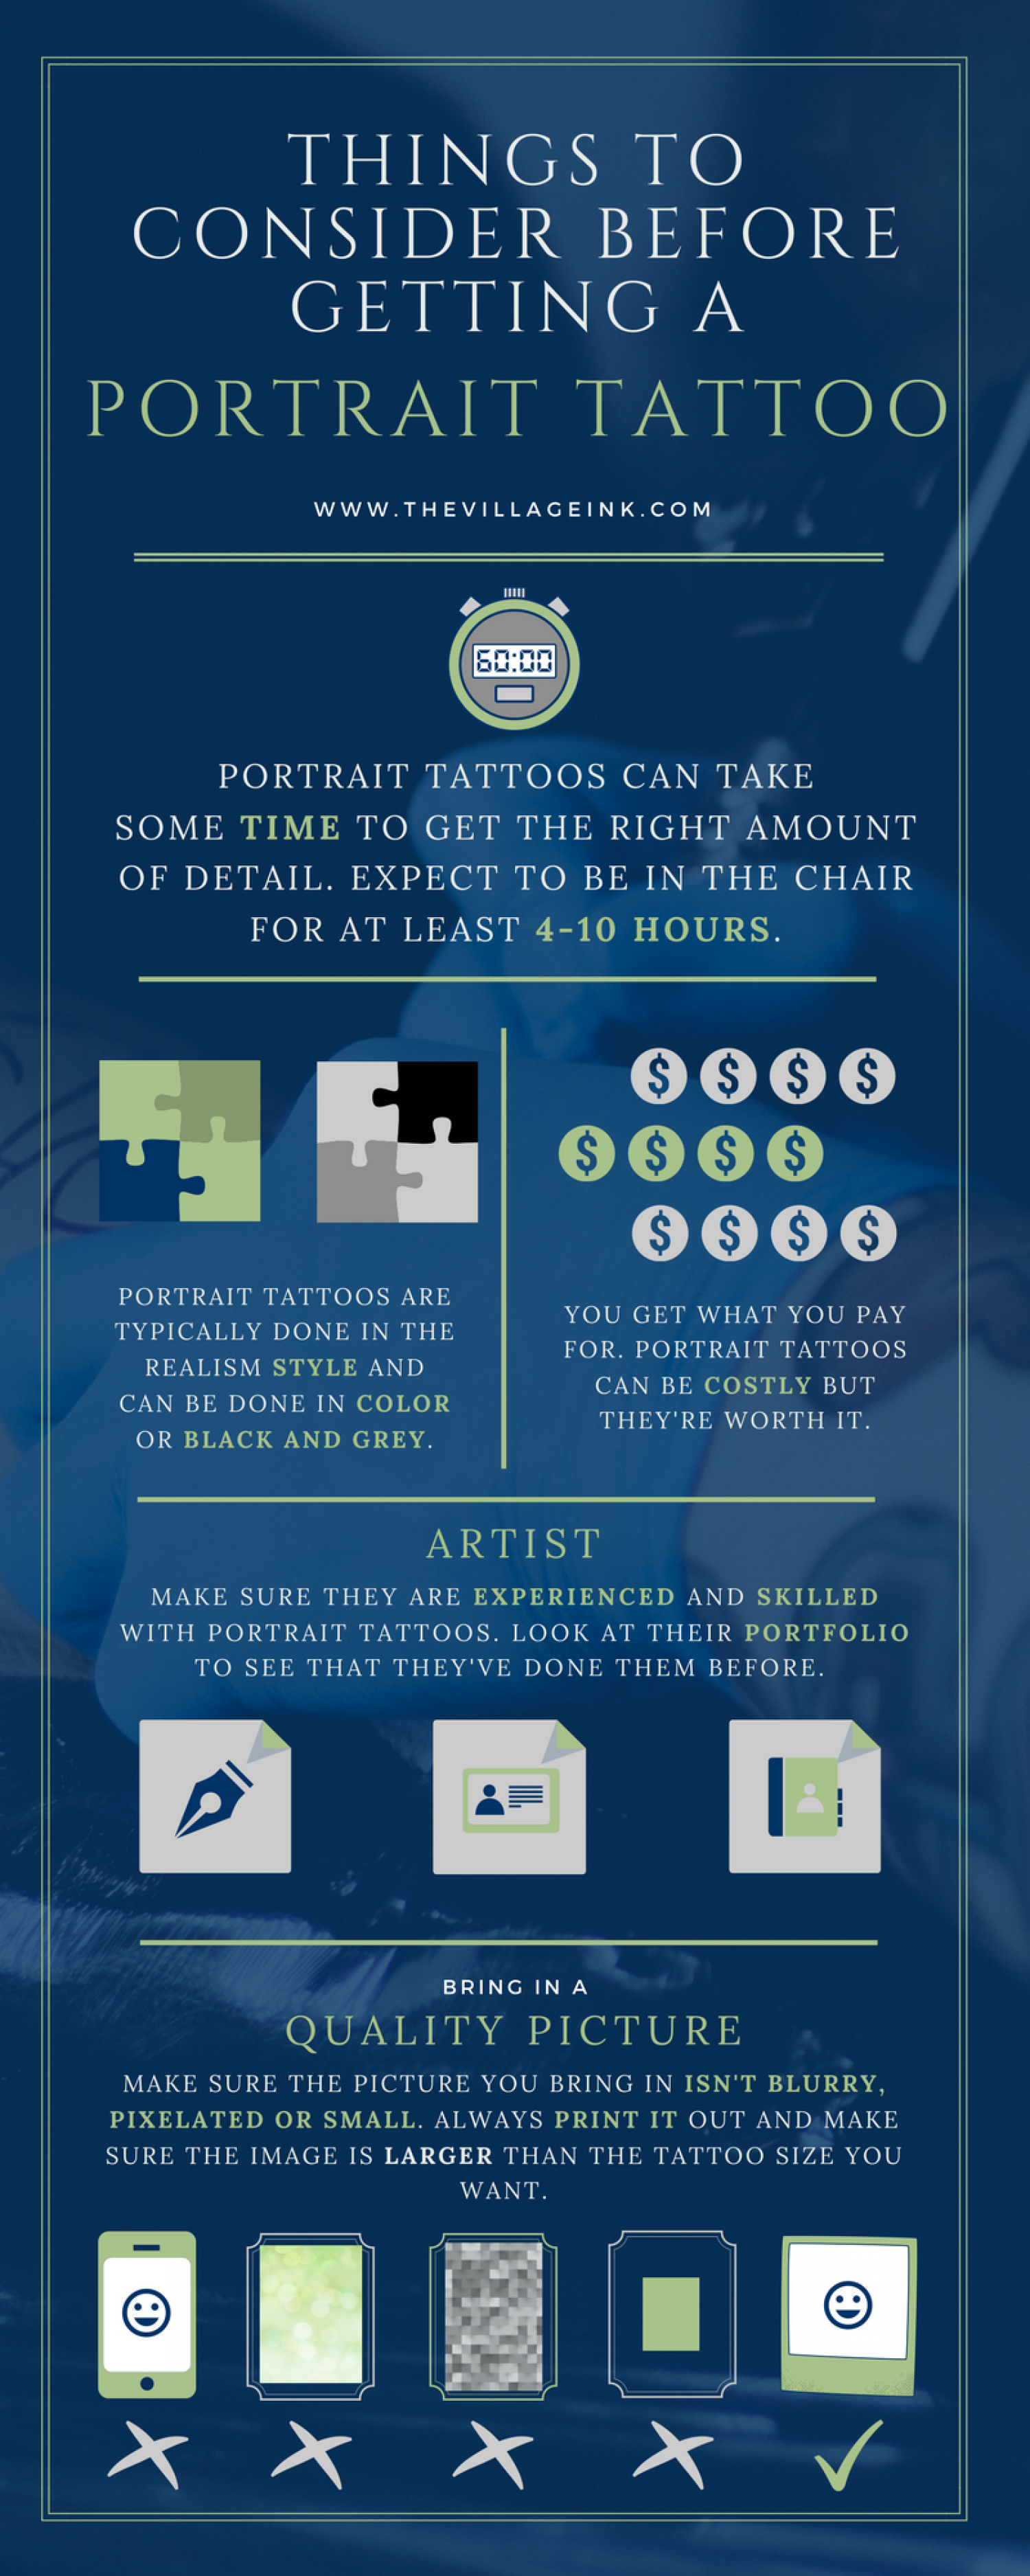 Things To Consider Before Getting A Portrait Tattoo Infographic